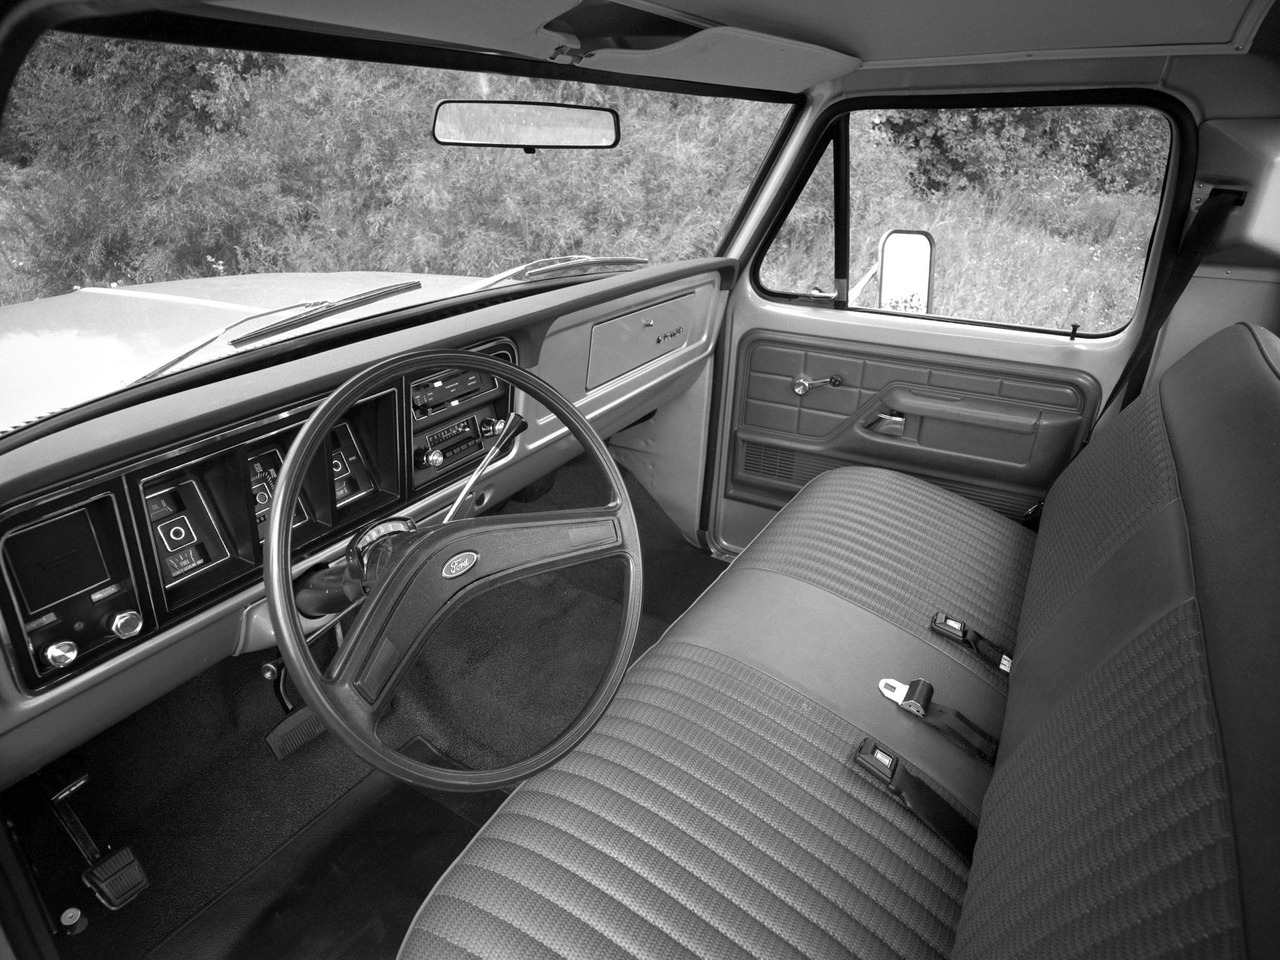 1977 Ford F-100 Custom. Hanging out for the come-back of bench seats!